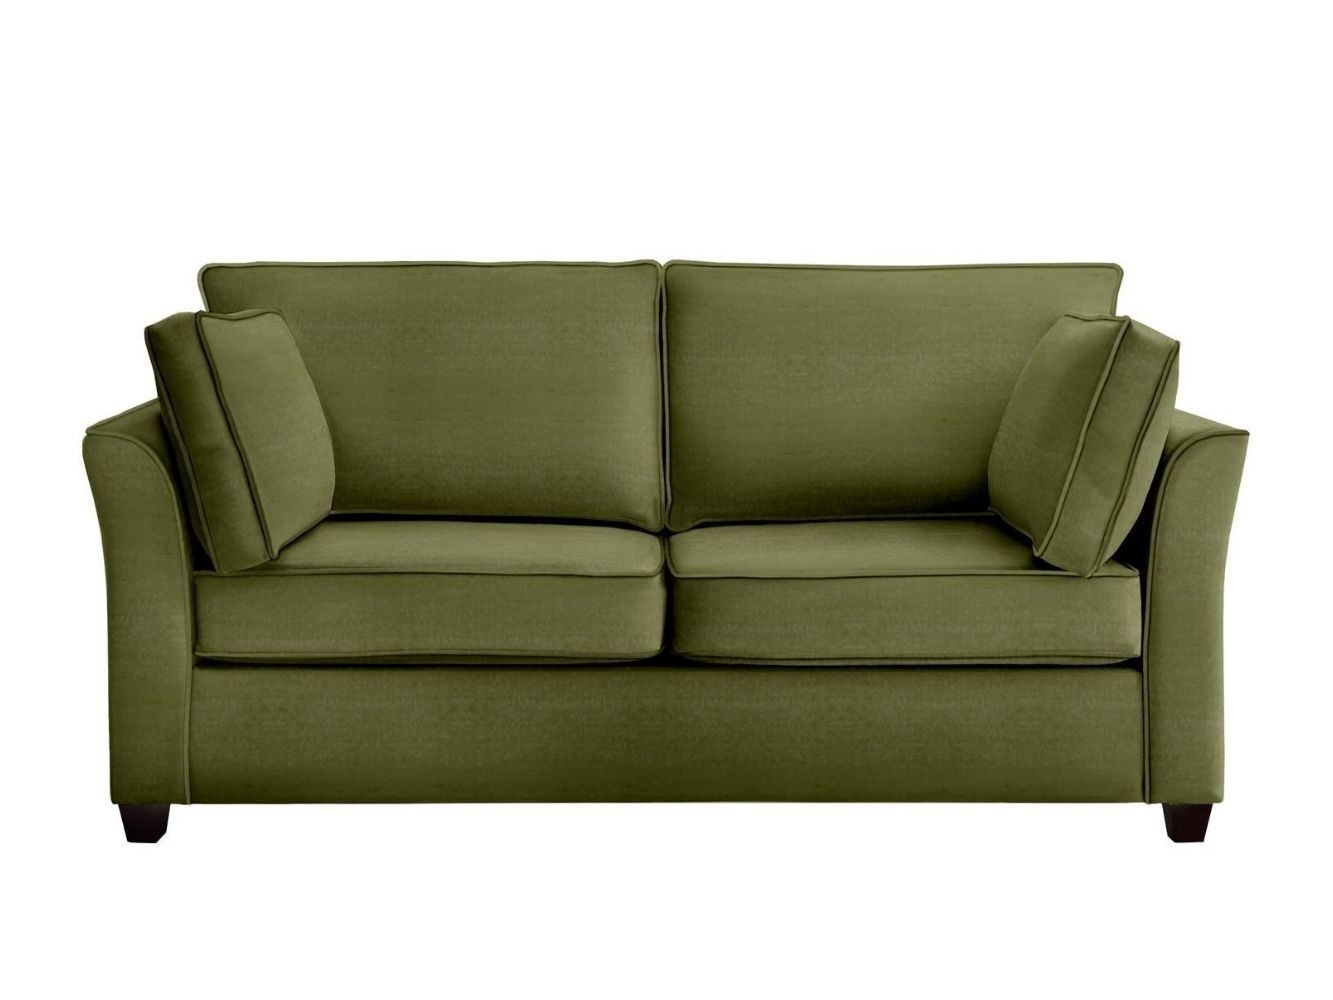 This is how I look in Stain Resistant Deep Velvet Kale with reflex foam seat cushions